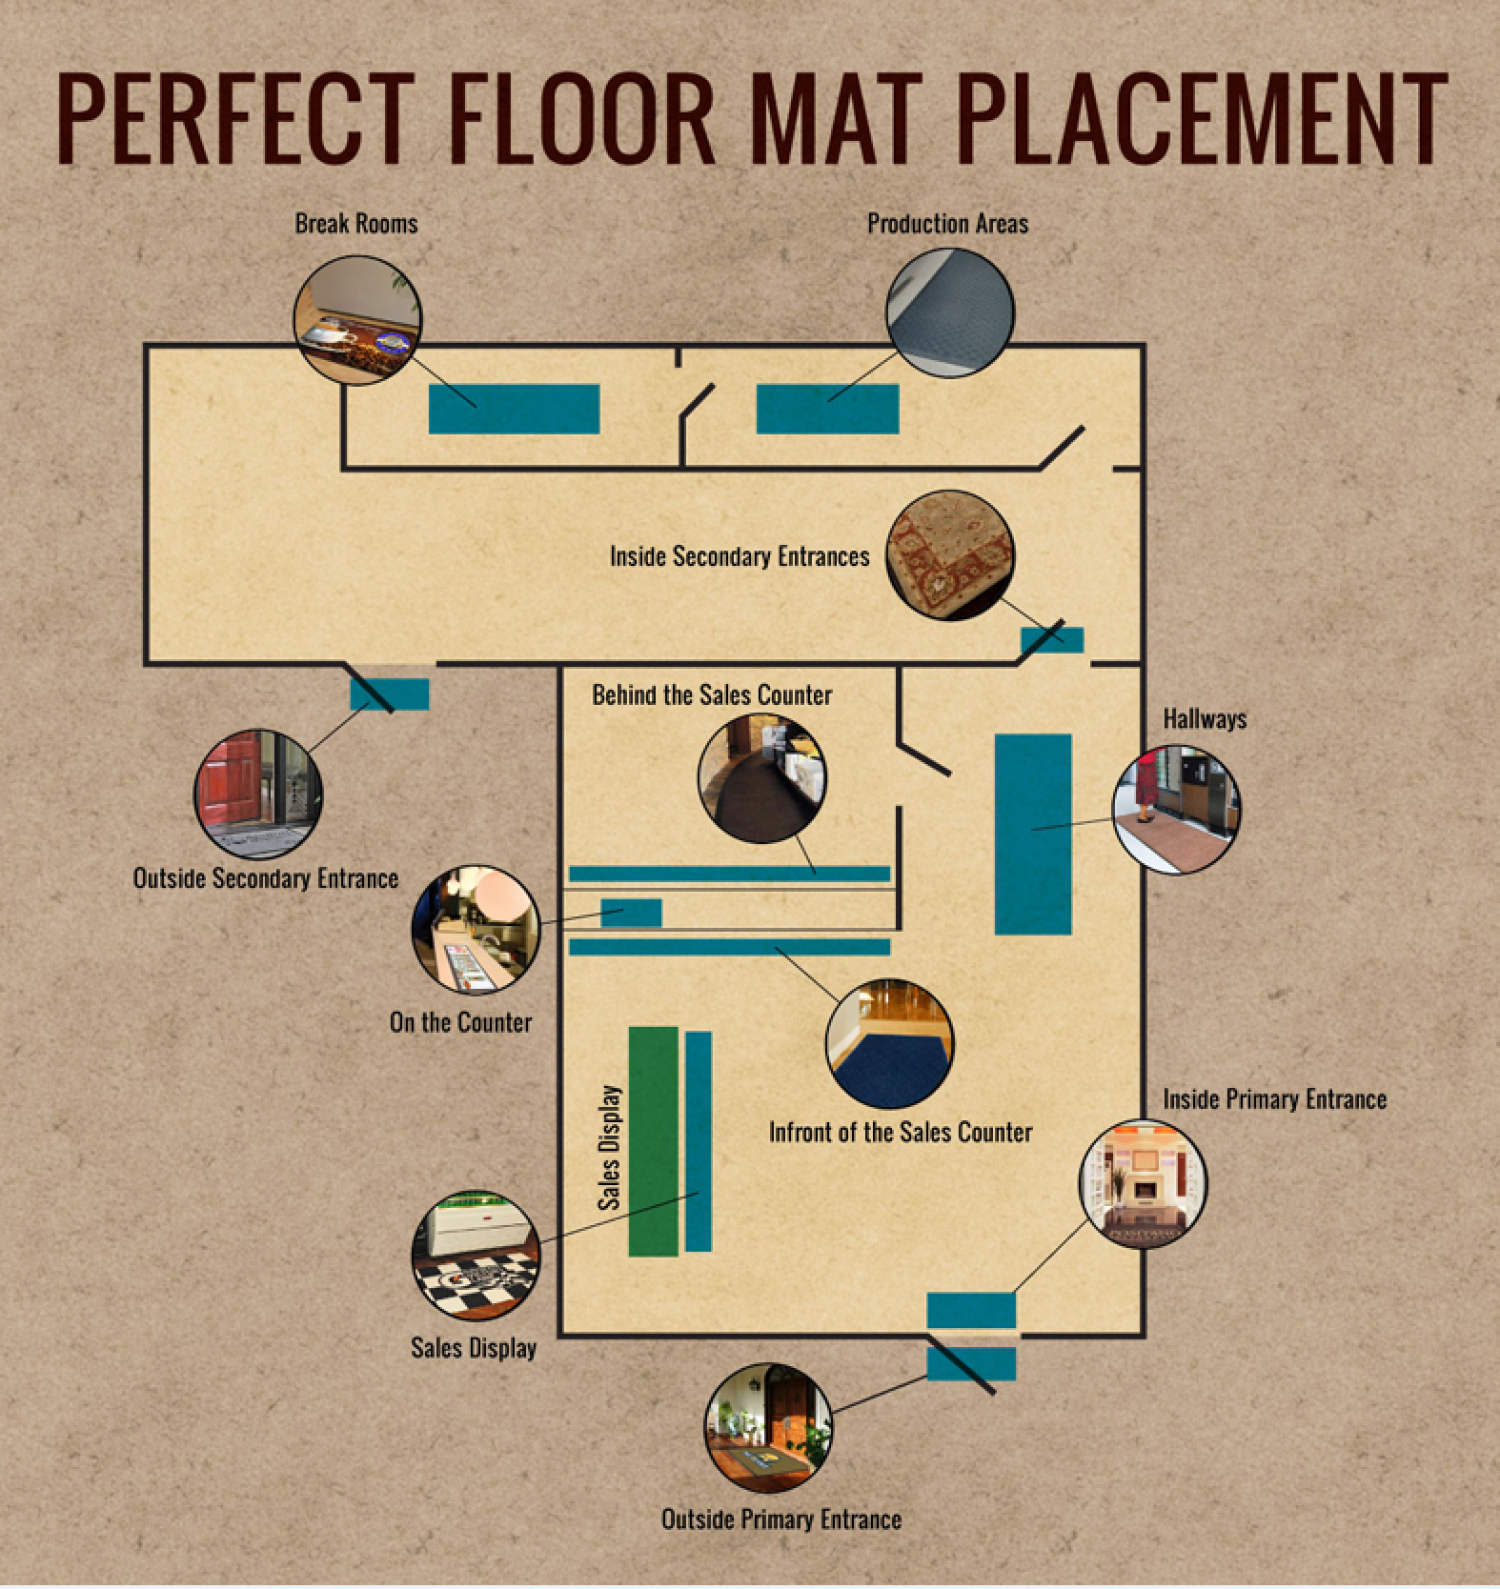 Custom Floor Mats Placement  Infographic